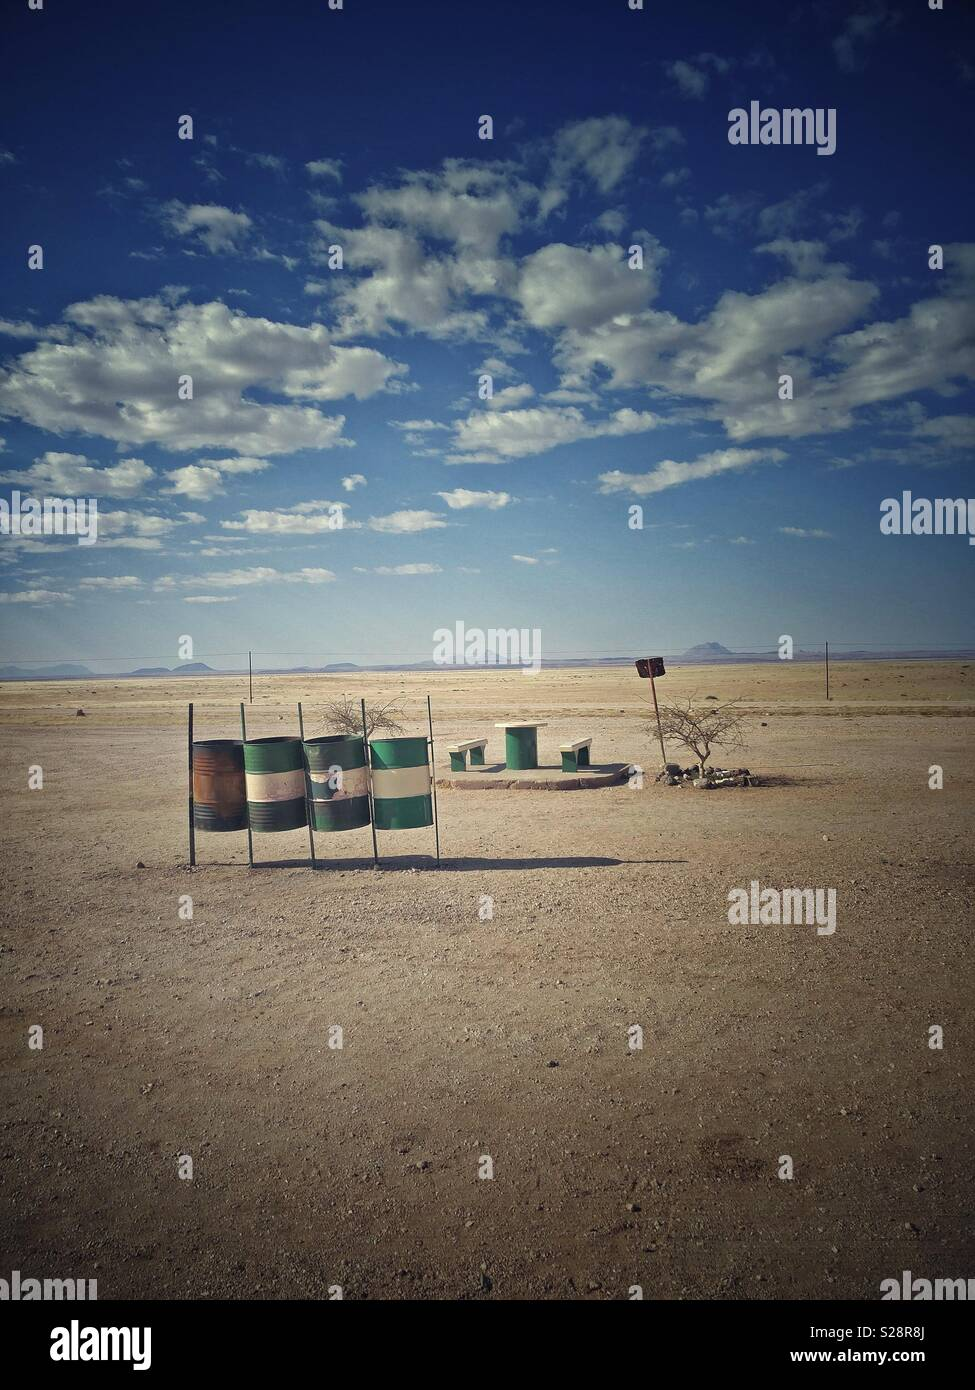 Roadside picnic area with oil drums for recycling bins, Namibia. Vintage look. Vertical portrait format with copyspace. Stock Photo